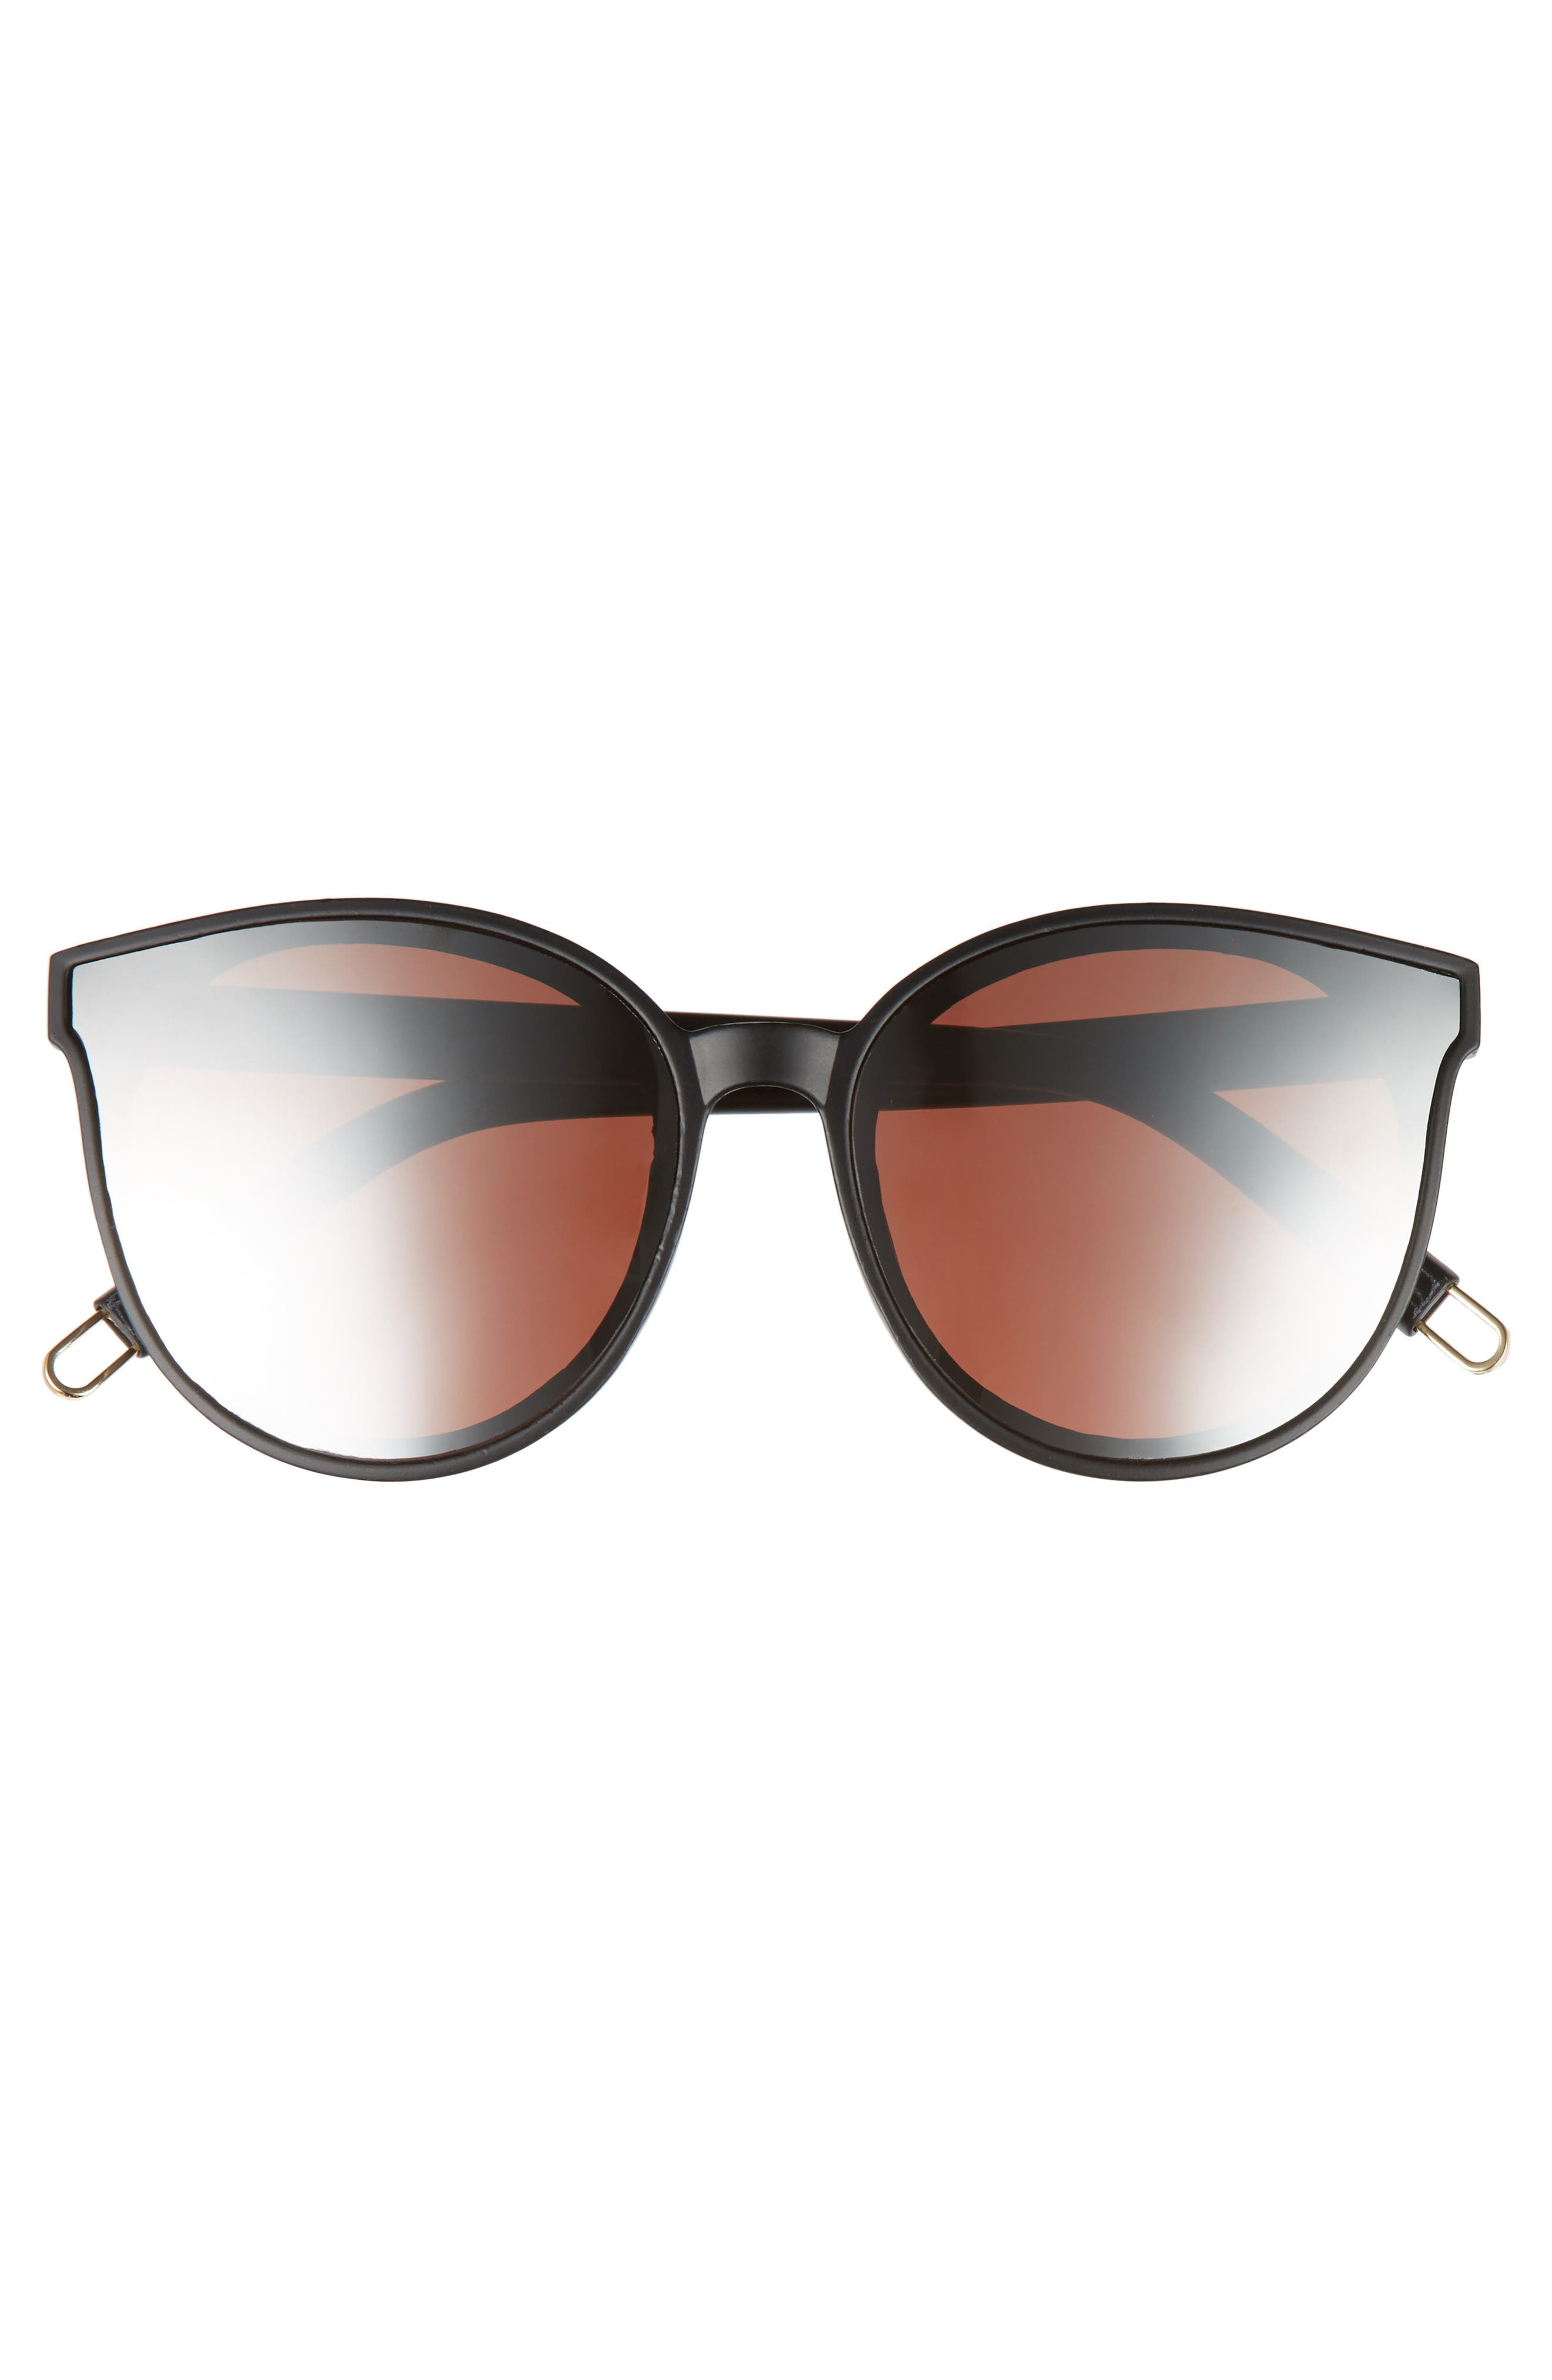 59mm Metal Tip Round Sunglasses,                             Alternate thumbnail 3, color,                             Black/ Rose Gold